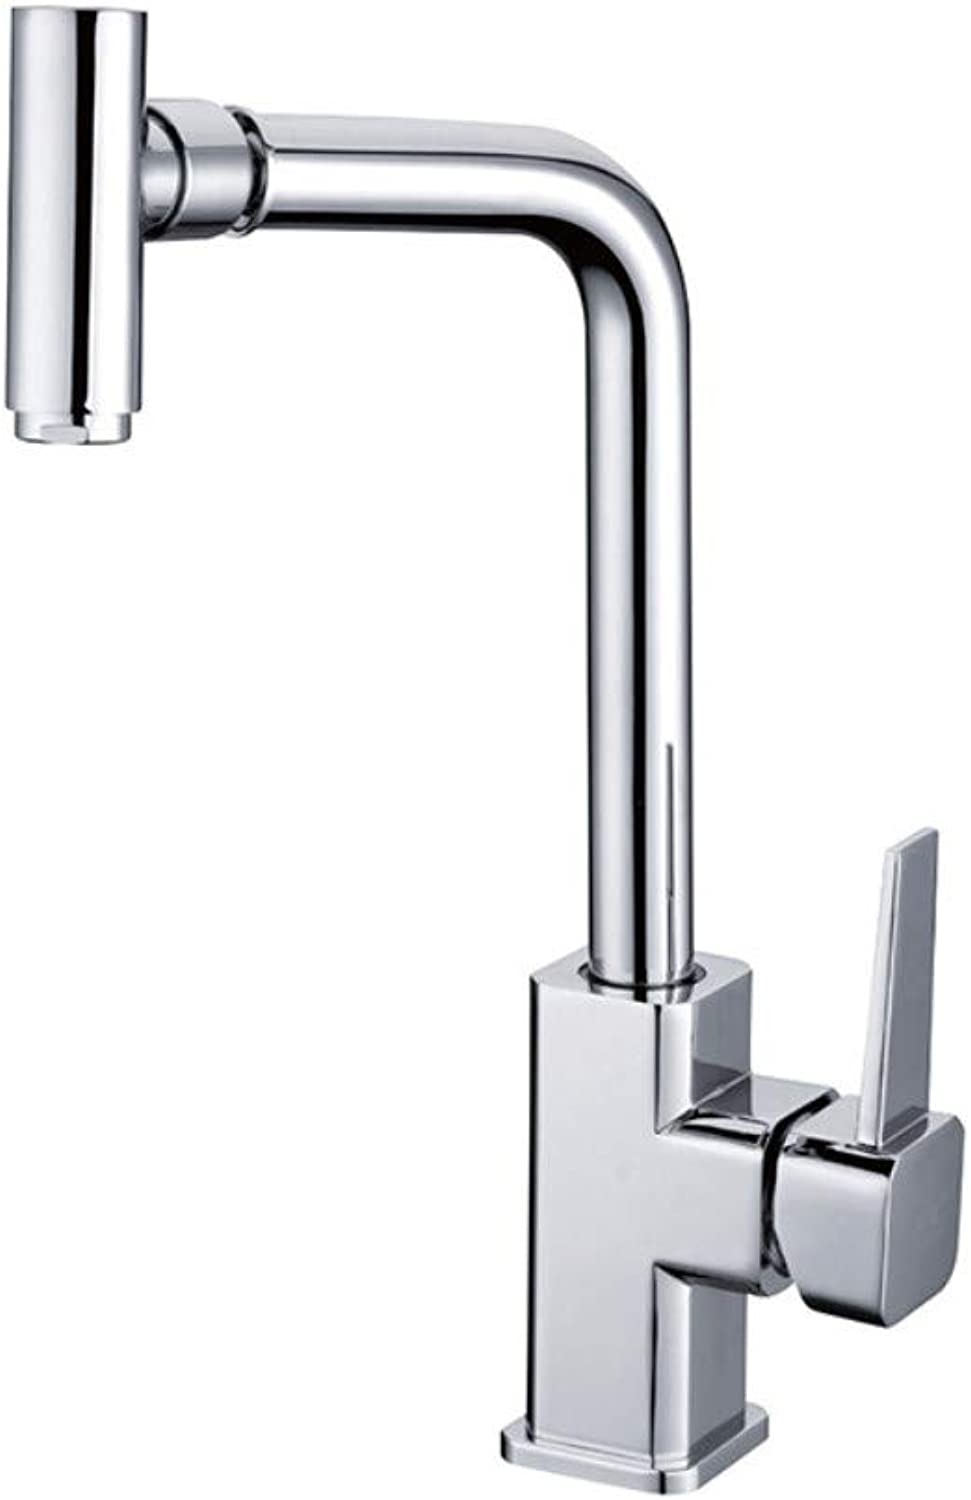 Kitchen Sink Faucet Pull-Out Kitchen Faucet 7 Word redating Sink Sink Basin Faucet